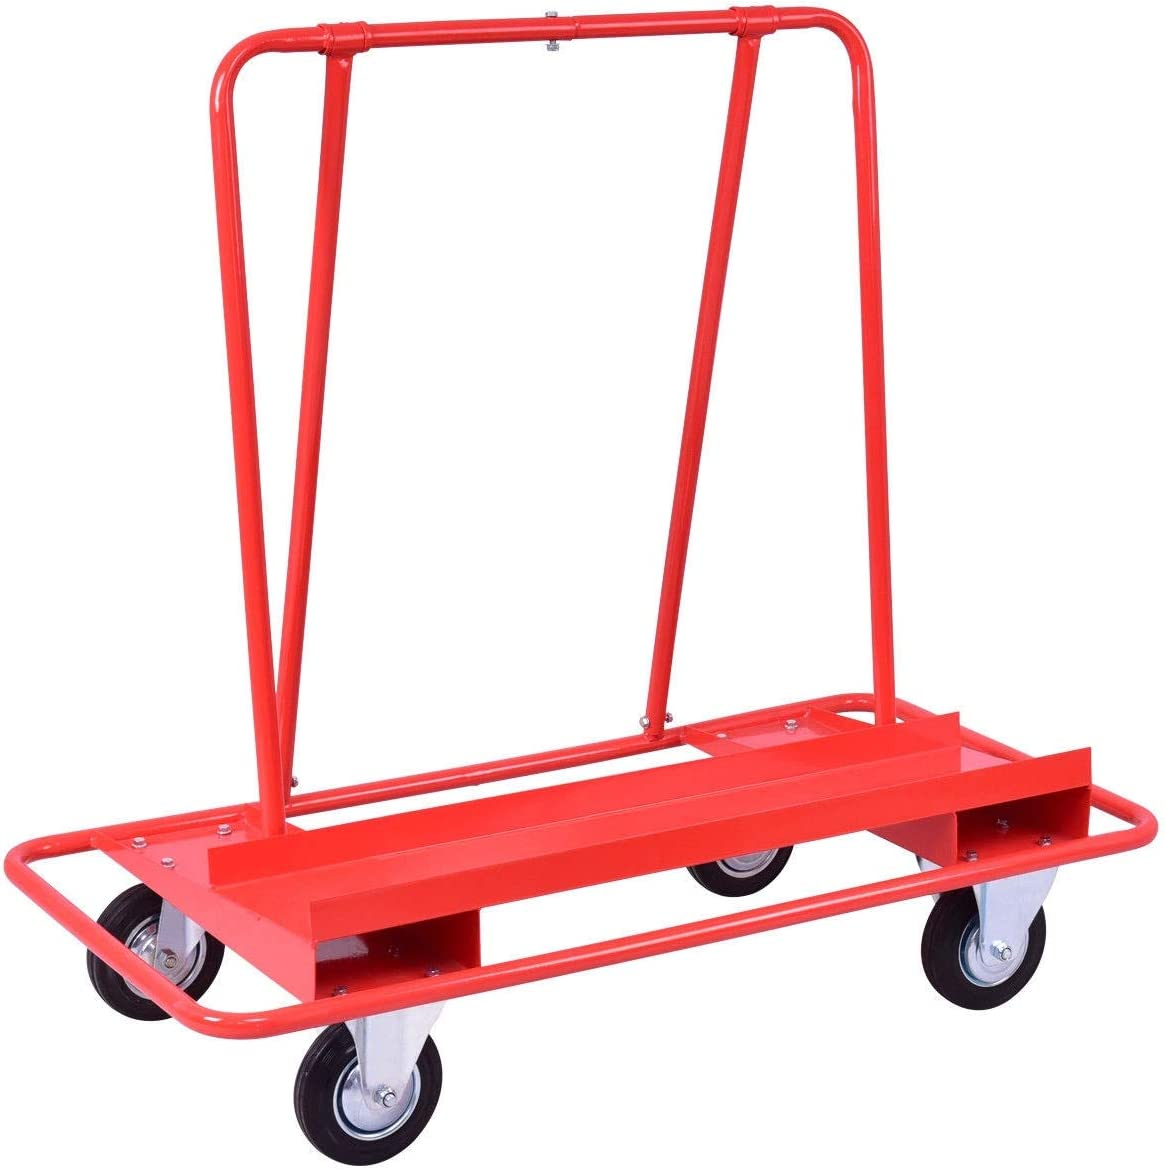 Cypress Shop Drywall Sheet Cart Dolly Handling Sheetrock Heavy Duty Sheet Panel Service Cart Professional Mover Utility Mobility Commercial Grade Trolley Cart Handling Capacity 770lbs Rust Resistance